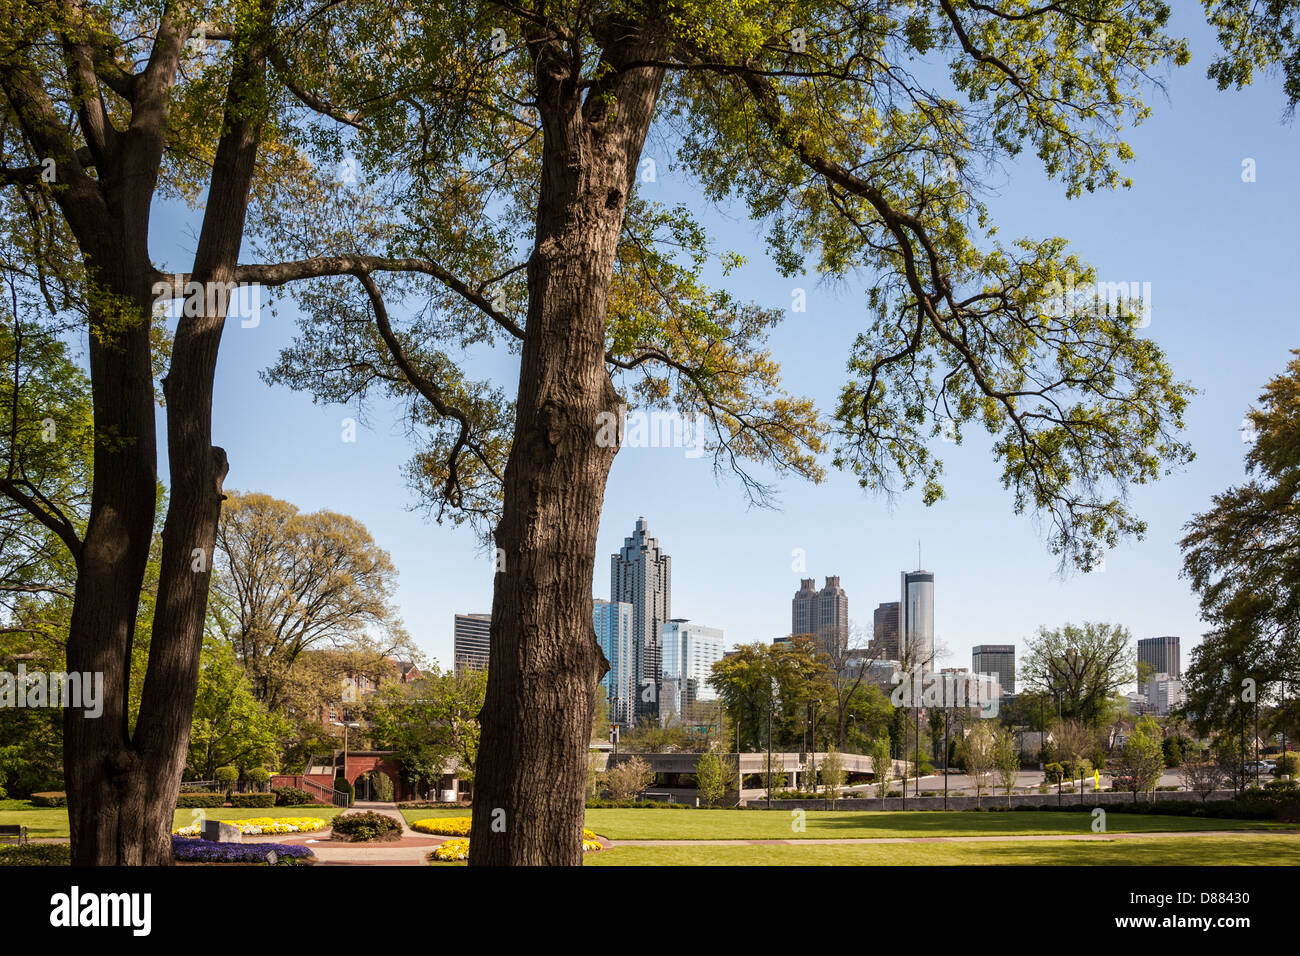 Atlanta, Georgia skyline. USA. - Stock Image